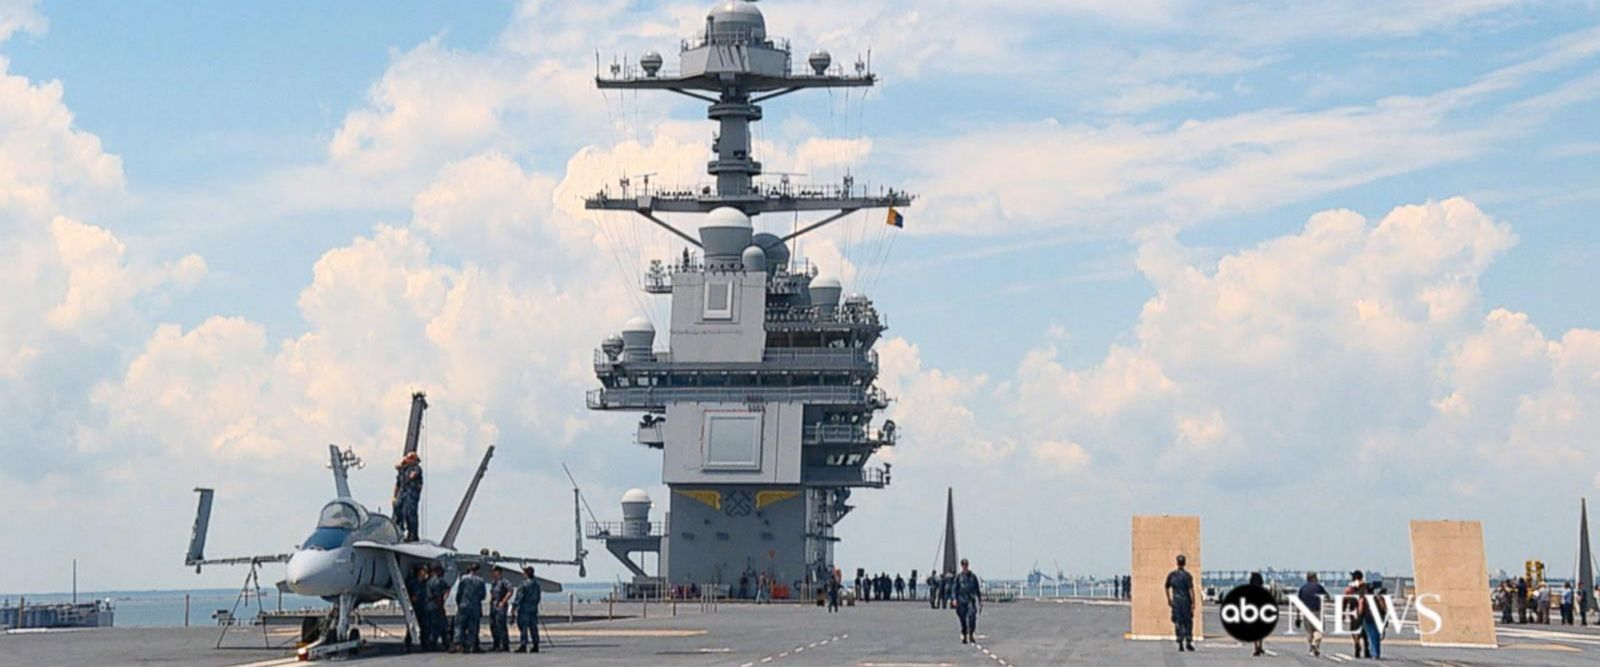 VIDEO: US Navy's new aircraft carrier is 'quantum leap into the 21st century'